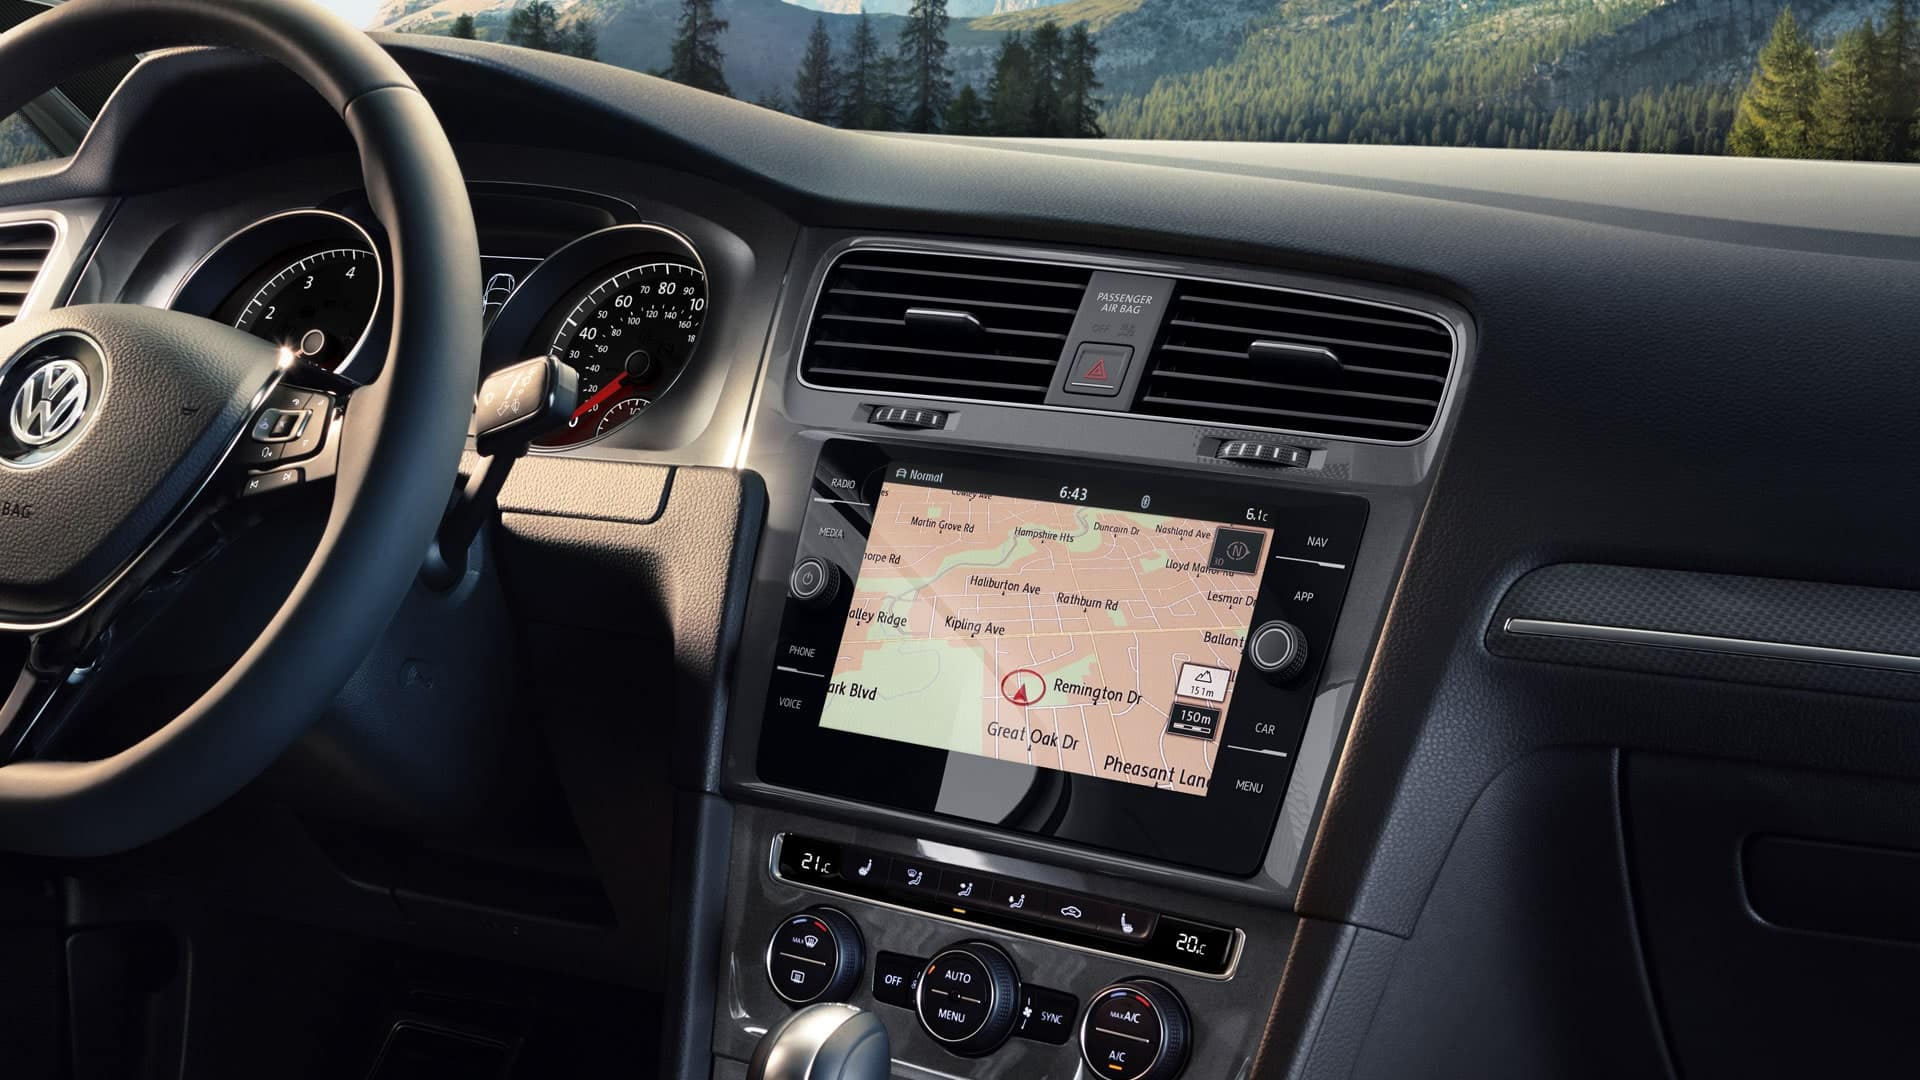 2019 VW Golf Alltrack discover media control